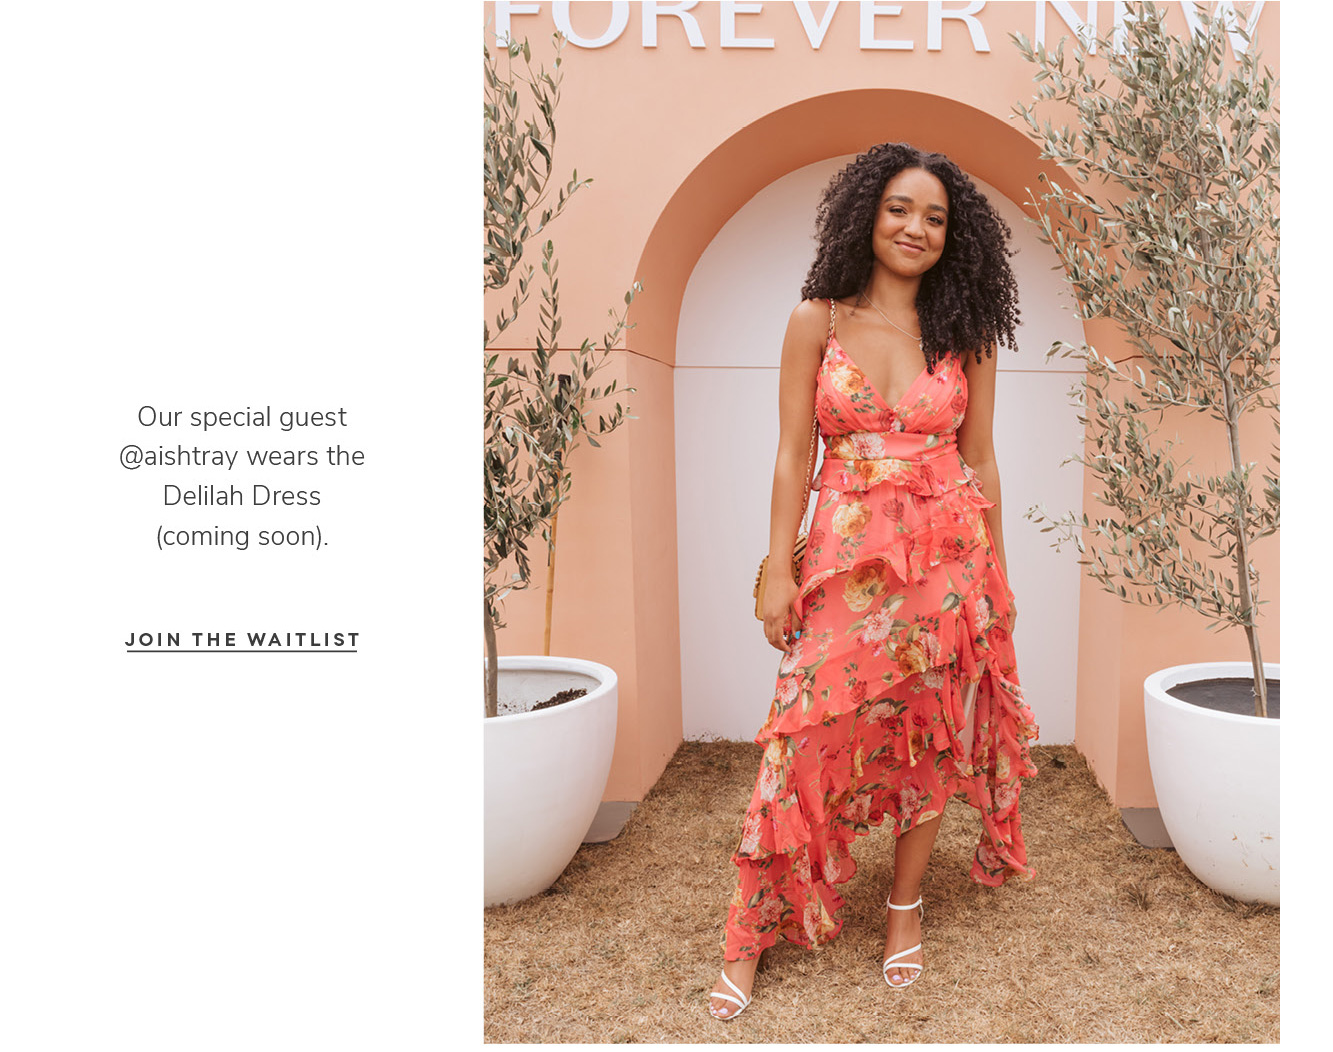 Our special guest @aishtray wears the Delilah Dress (coming soon). JOIN THE WAITLIST